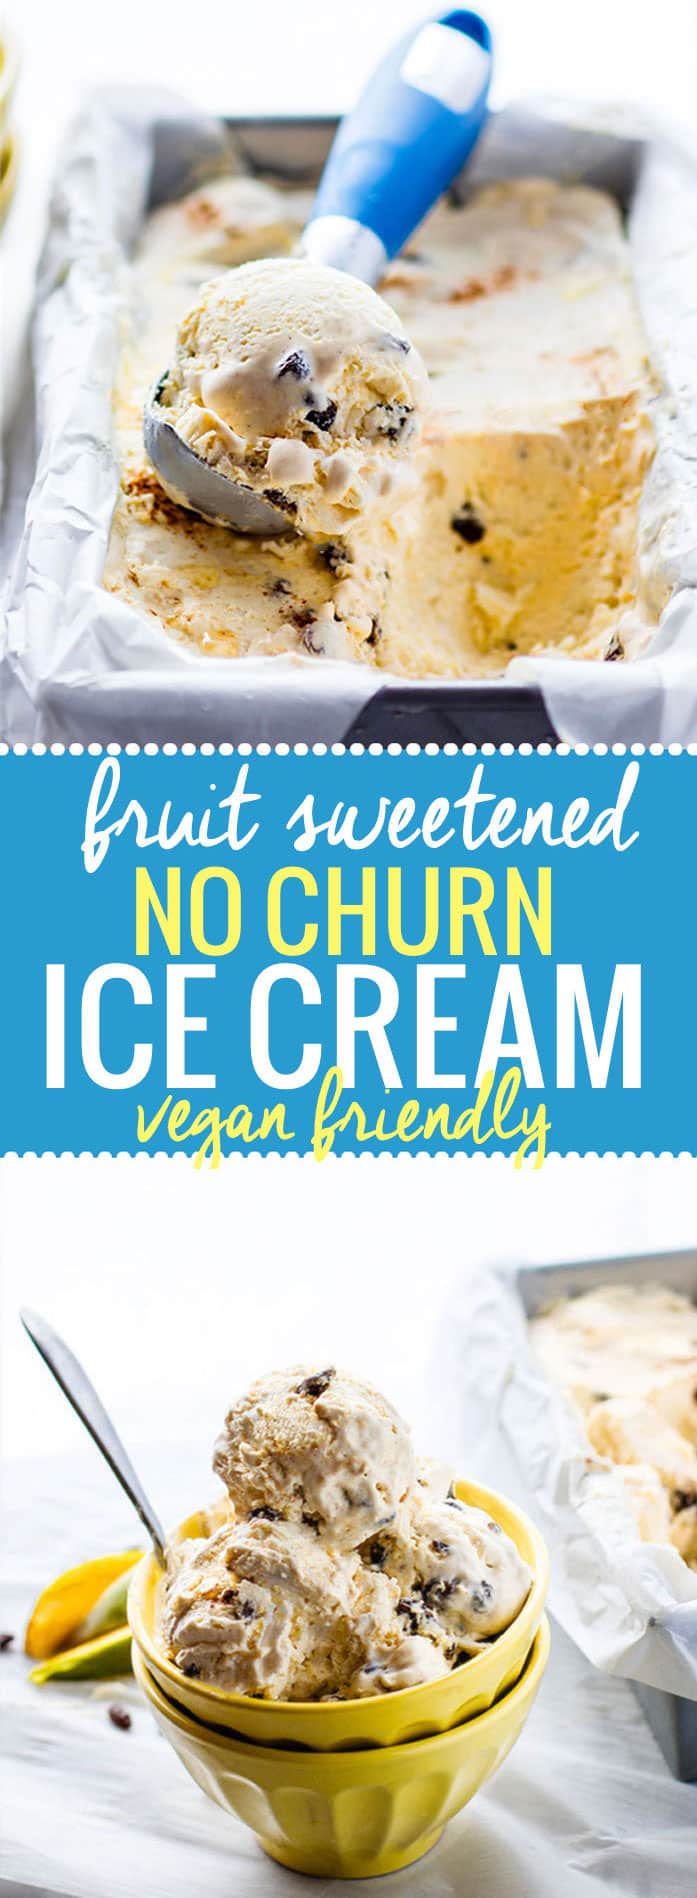 Vegan friendly Fruit sweetened no churn ice cream that's creamy, easy to make without condensed milk, just 5 ingredients! Paleo friendly too! @cotercrunch